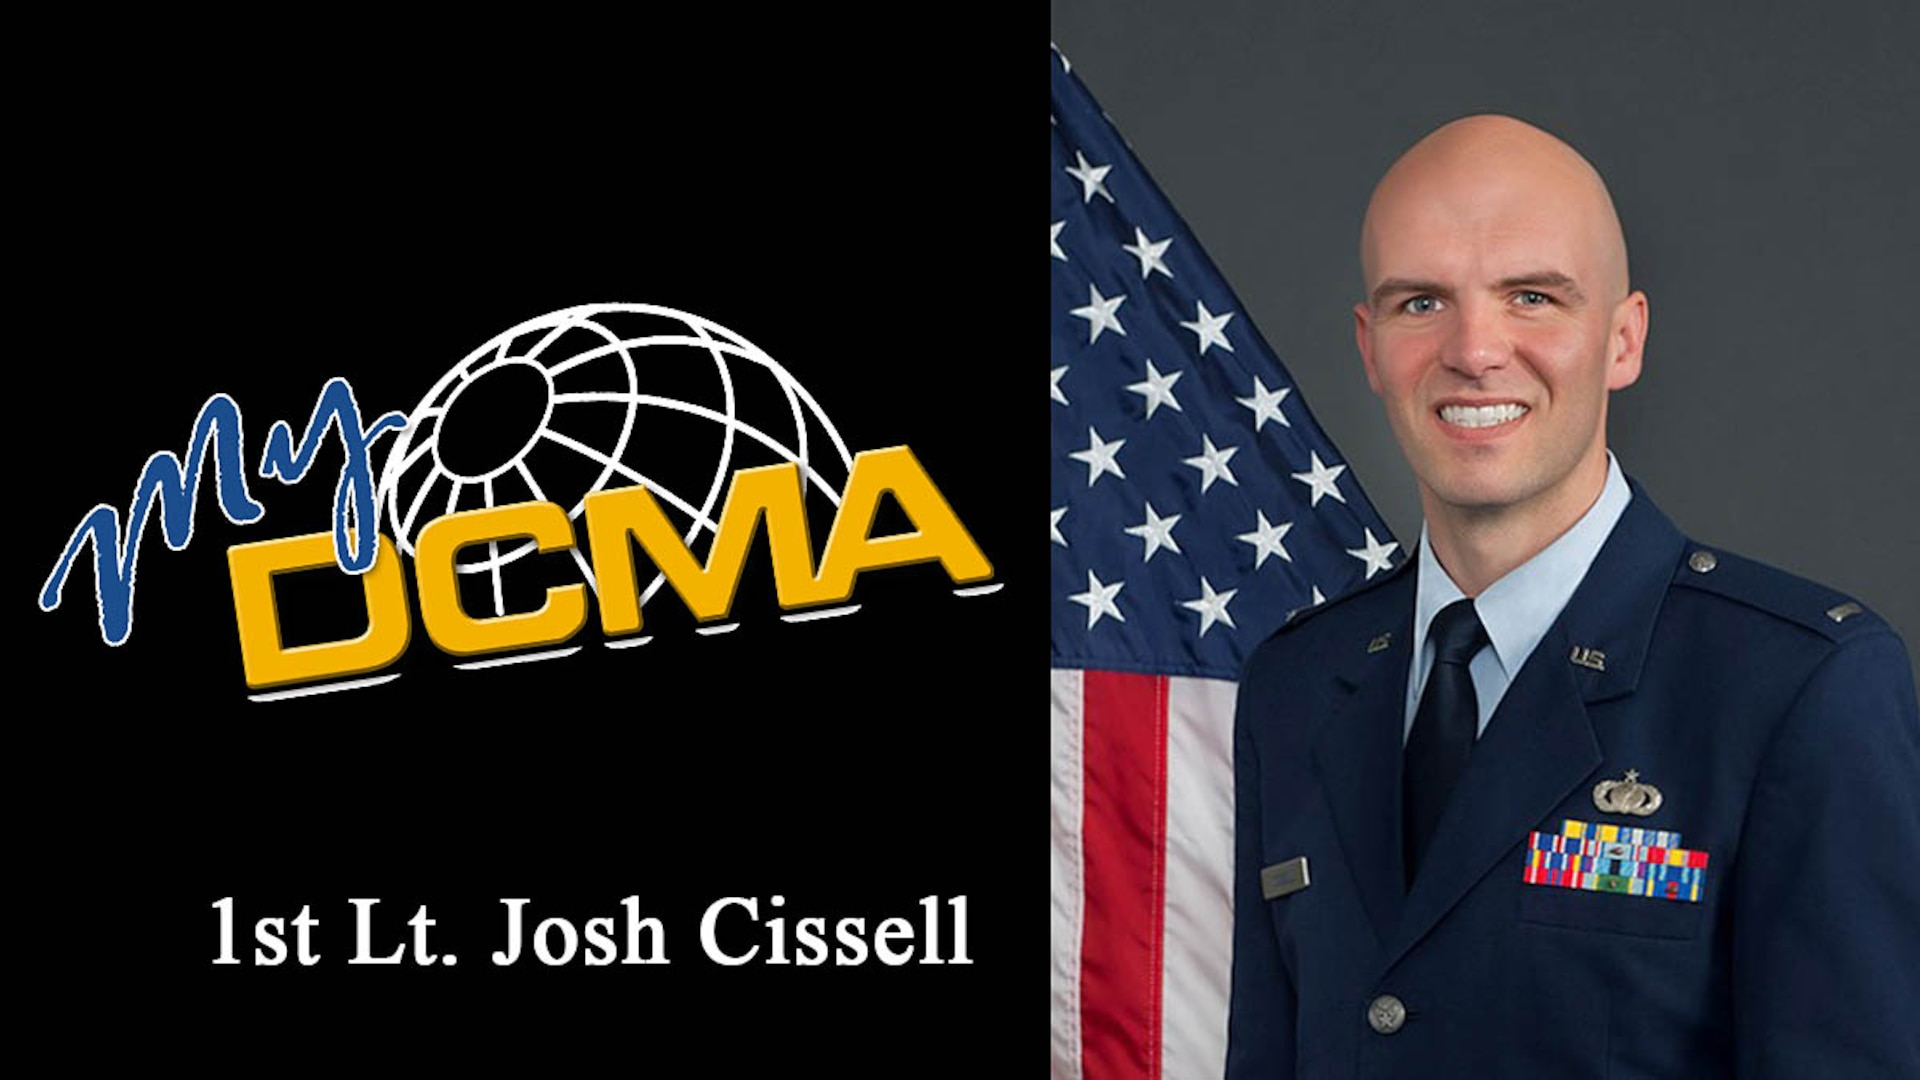 Featured in this edition of My DCMA is Air Force 1st Lt. Josh Cissell, Defense Contract Management Agency Lockheed Martin Fort Worth administrative contracting officer and acting executive officer.